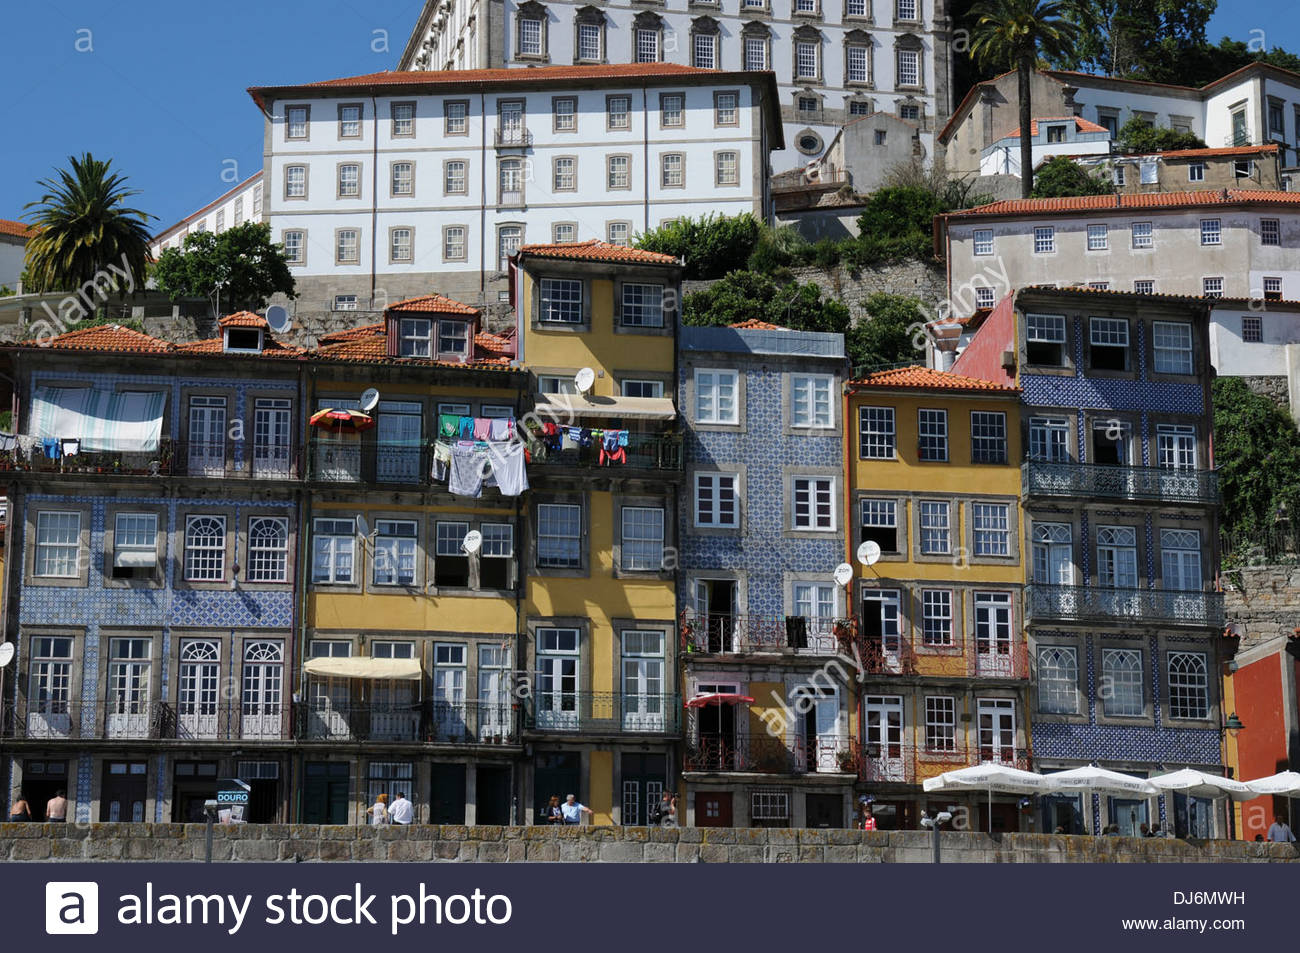 Buildings on the waterfront of the River Douro, Oporto, Portugal - Stock Image